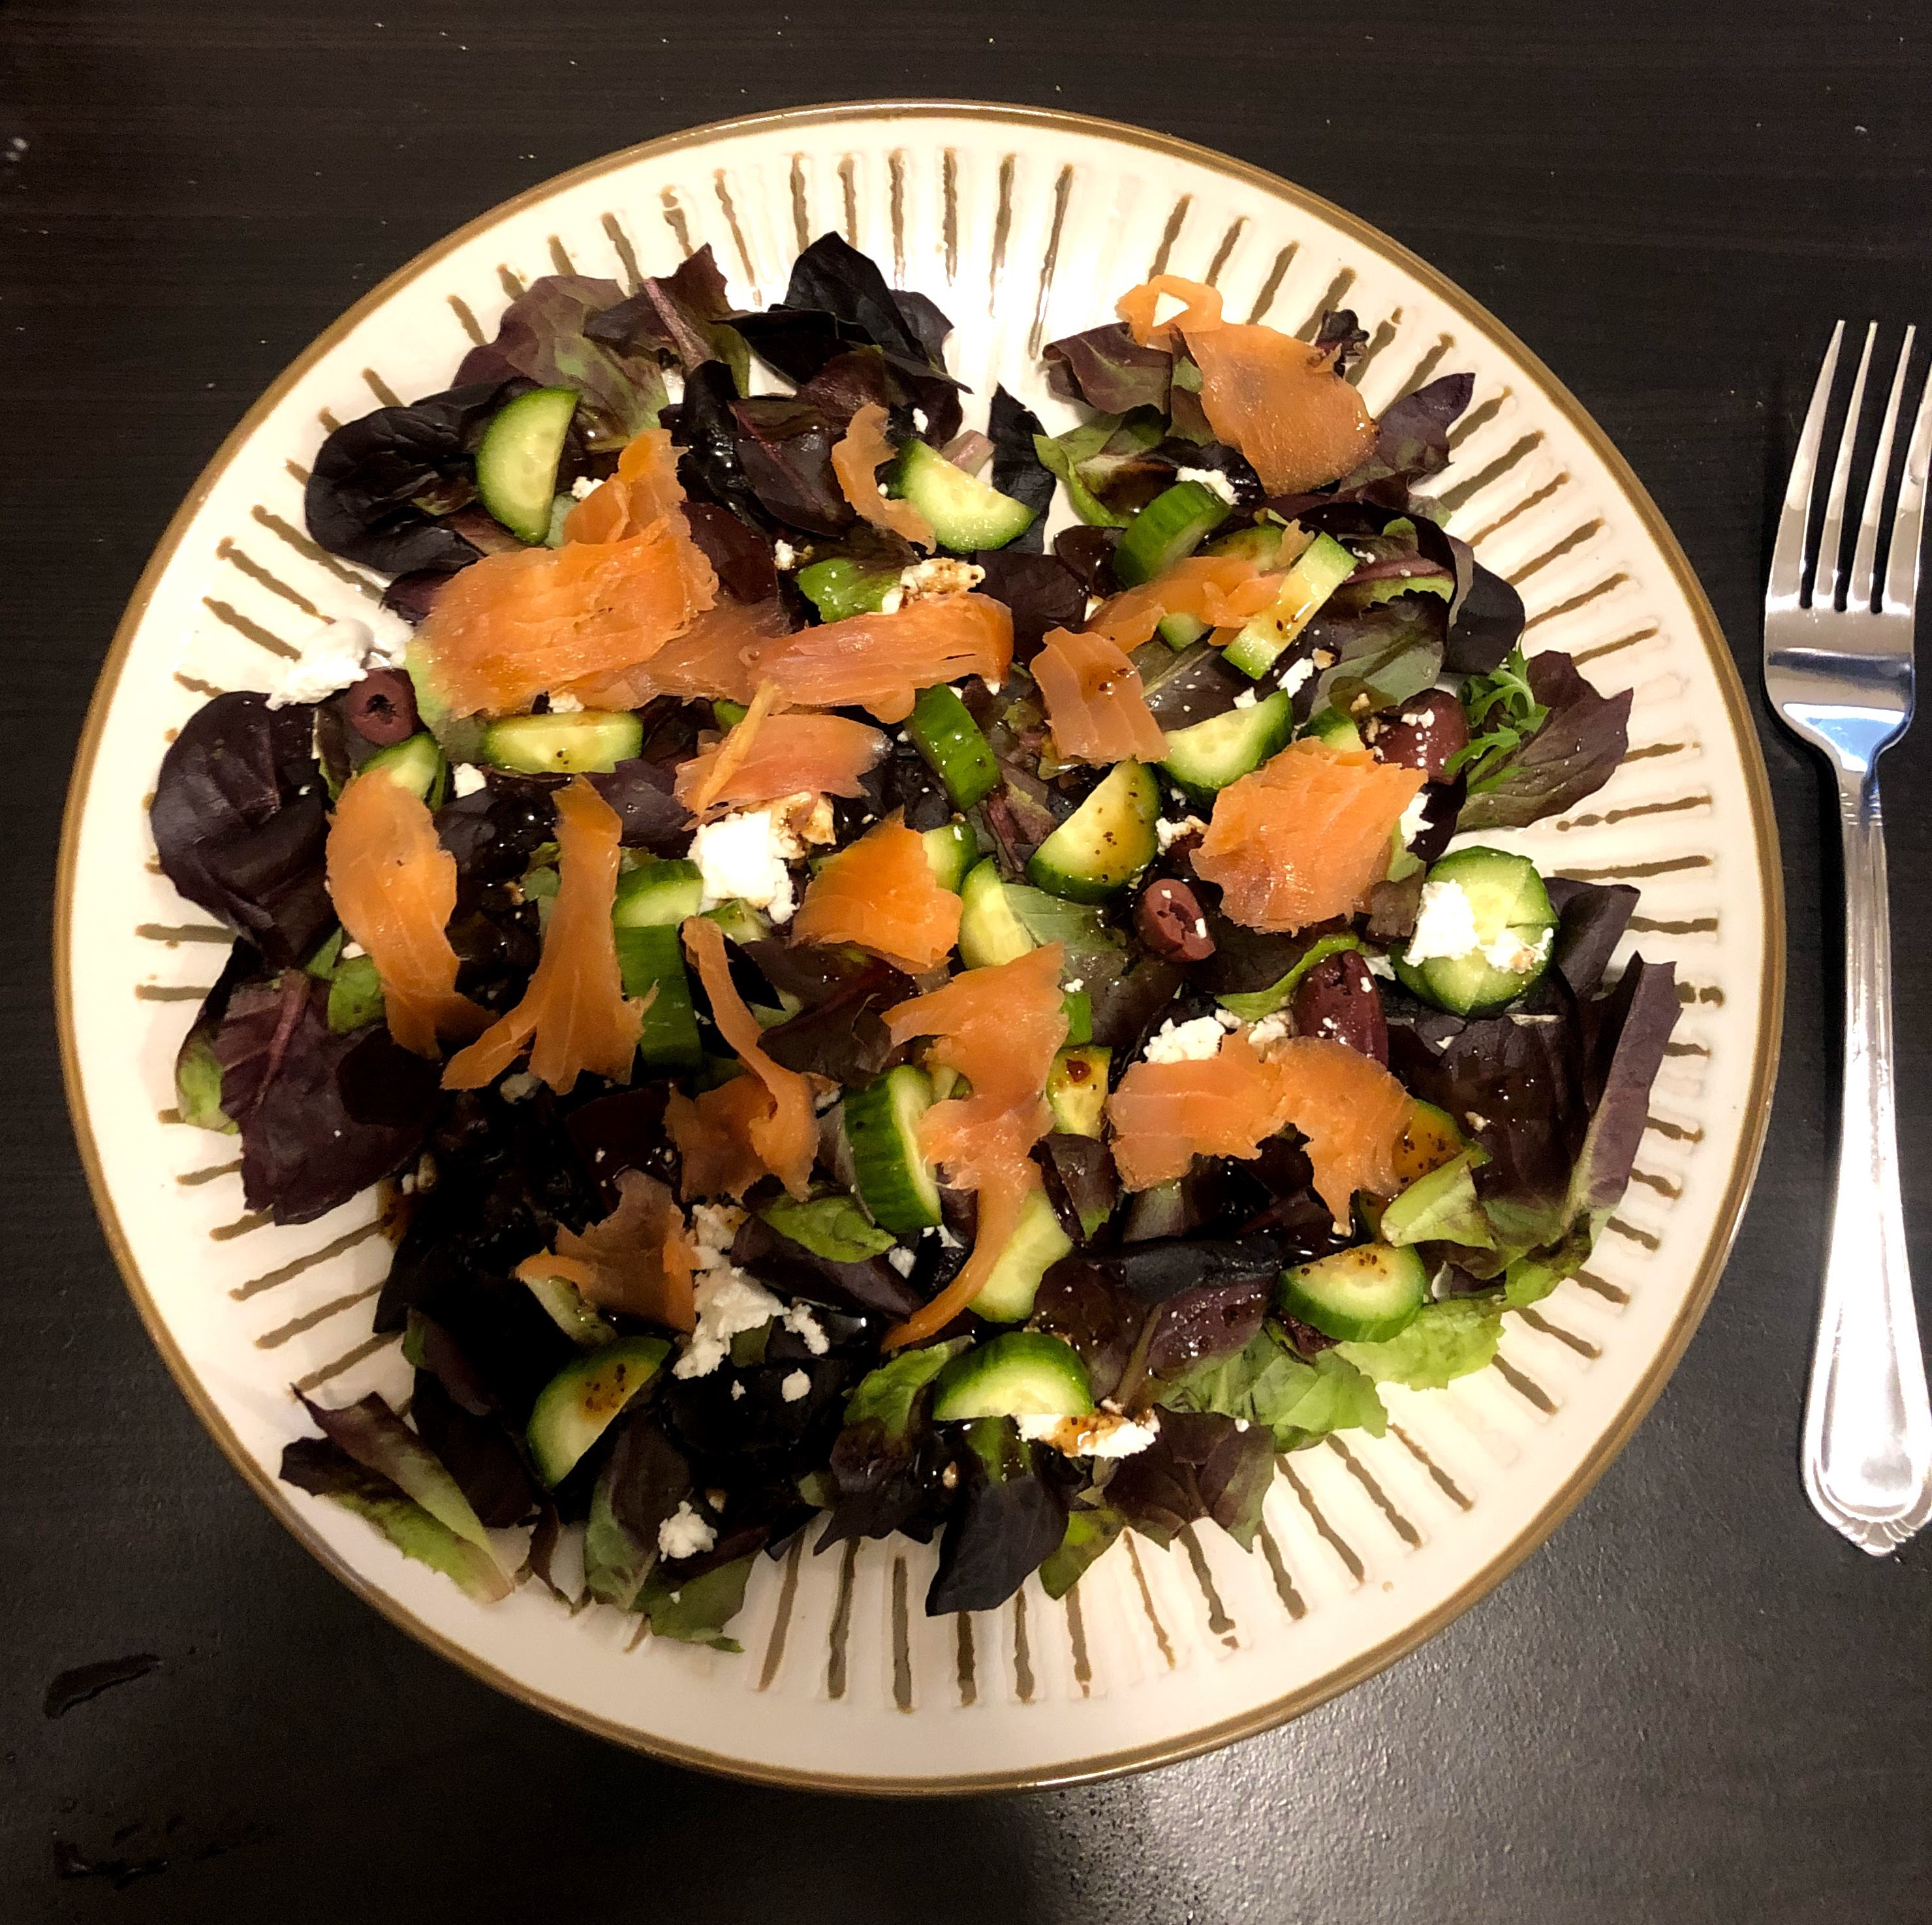 a salad on a plate with a fork, with olives cucumber, white cheese, dark greens, and smoked salmon